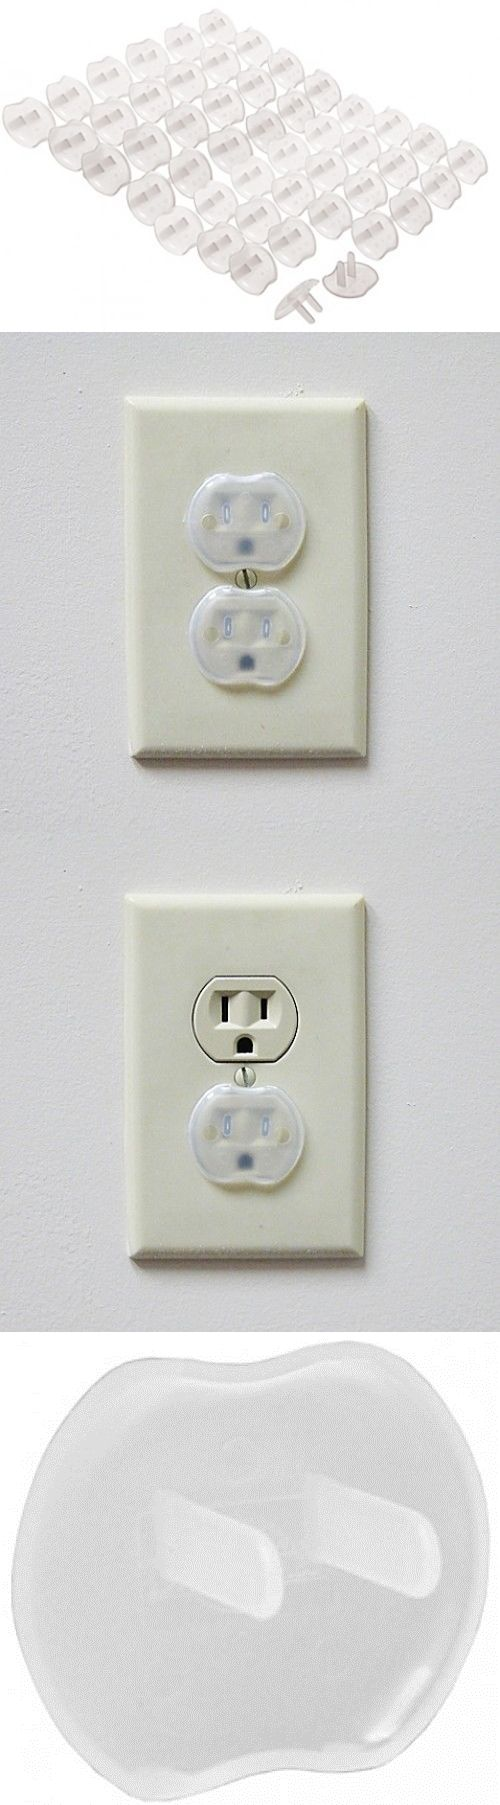 Best 25+ Outlet covers ideas on Pinterest | Wall light with switch Light Switch And Plug Covers on light switch and outlet covers, light switch and receptacle covers, electrical plug and switch covers,